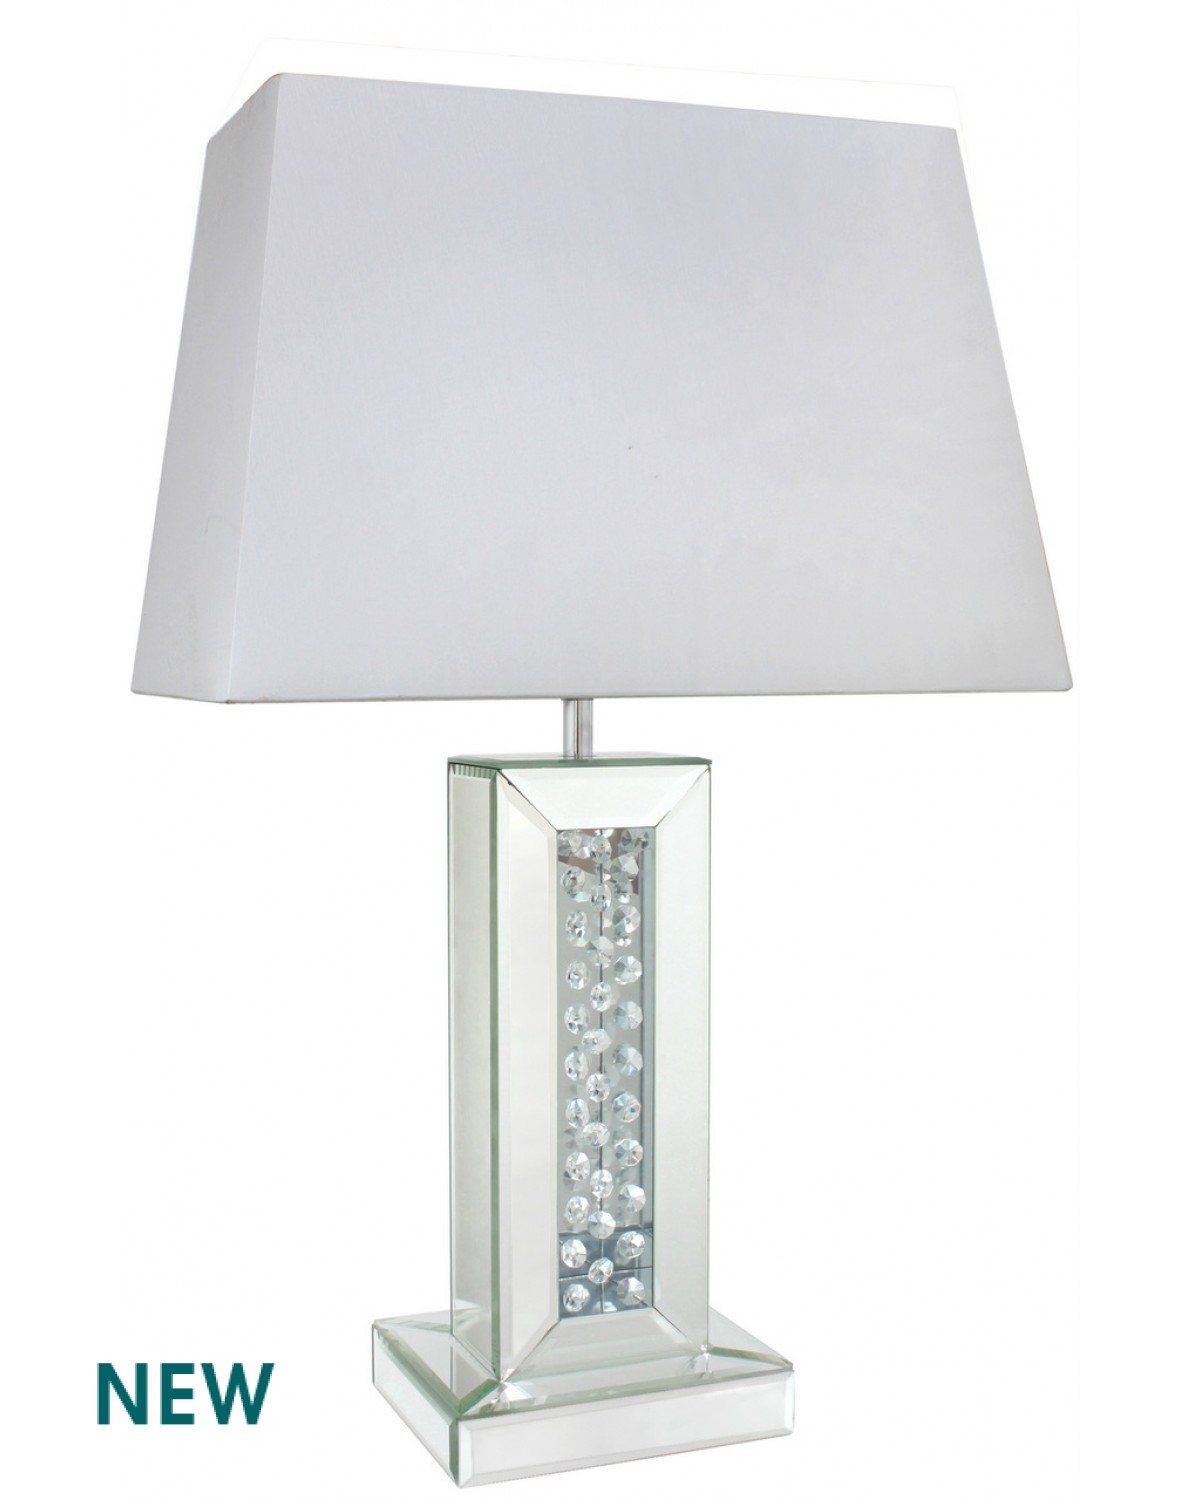 Floating Crystals Mirrored Lamp 60cm : 1200x1500 from www.outletmirrors.com size 1200 x 1500 jpeg 107kB